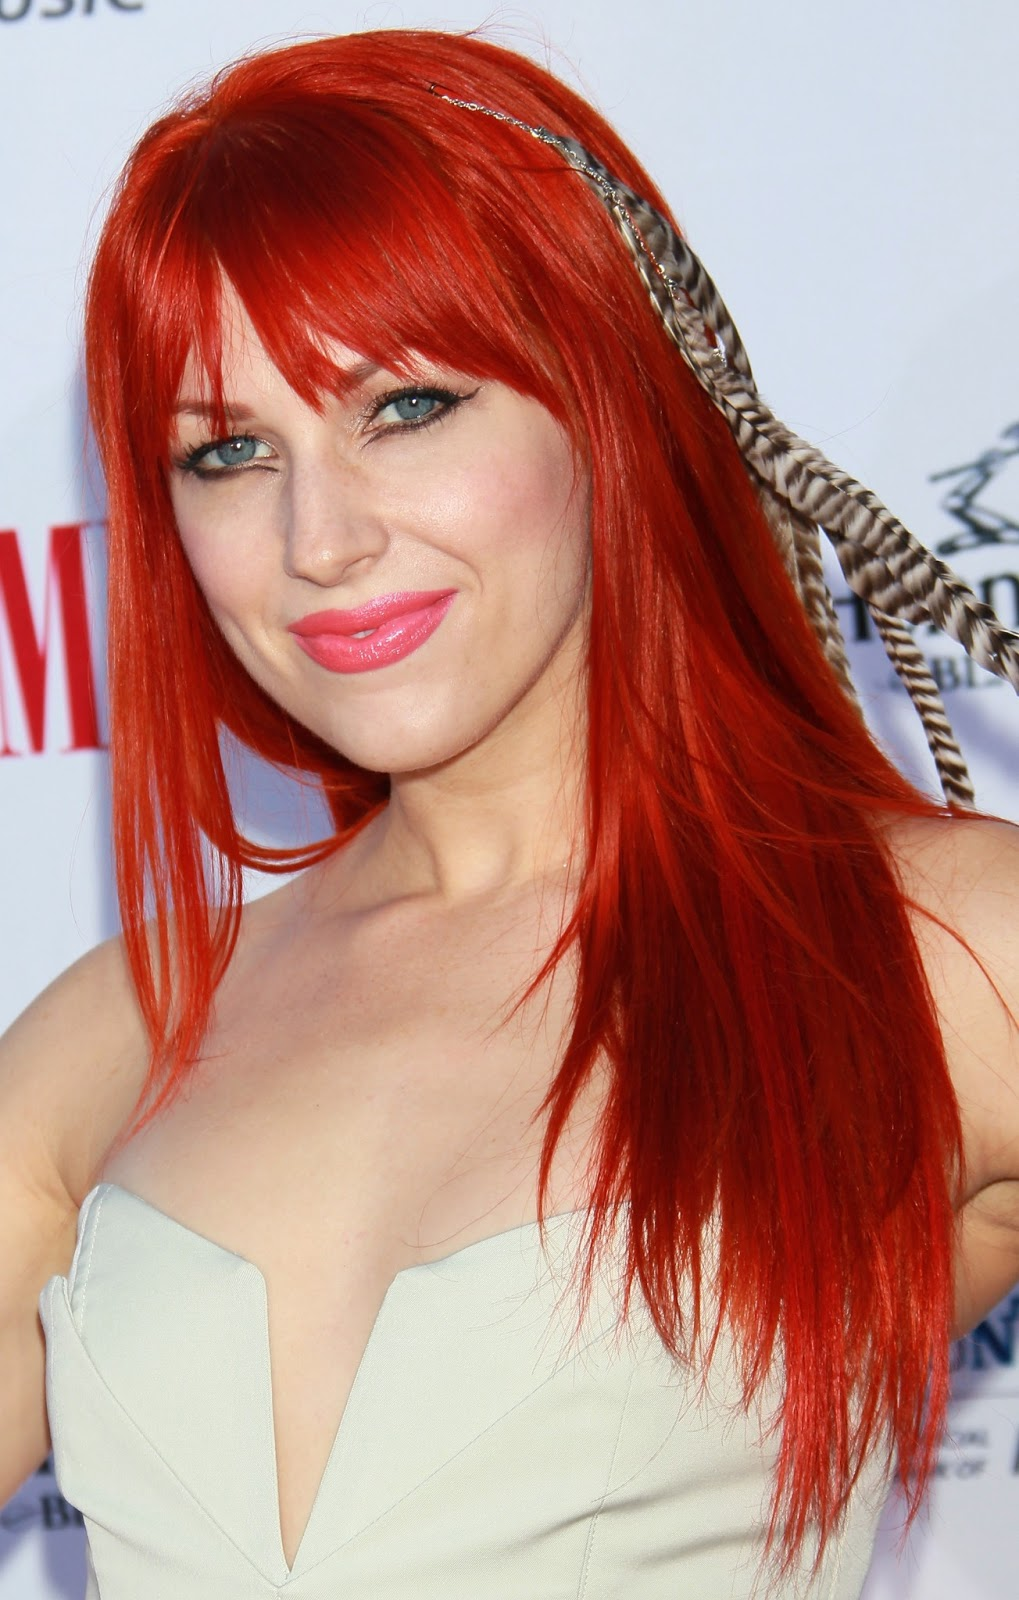 Red Hair | Best Celebrity Hairstyles